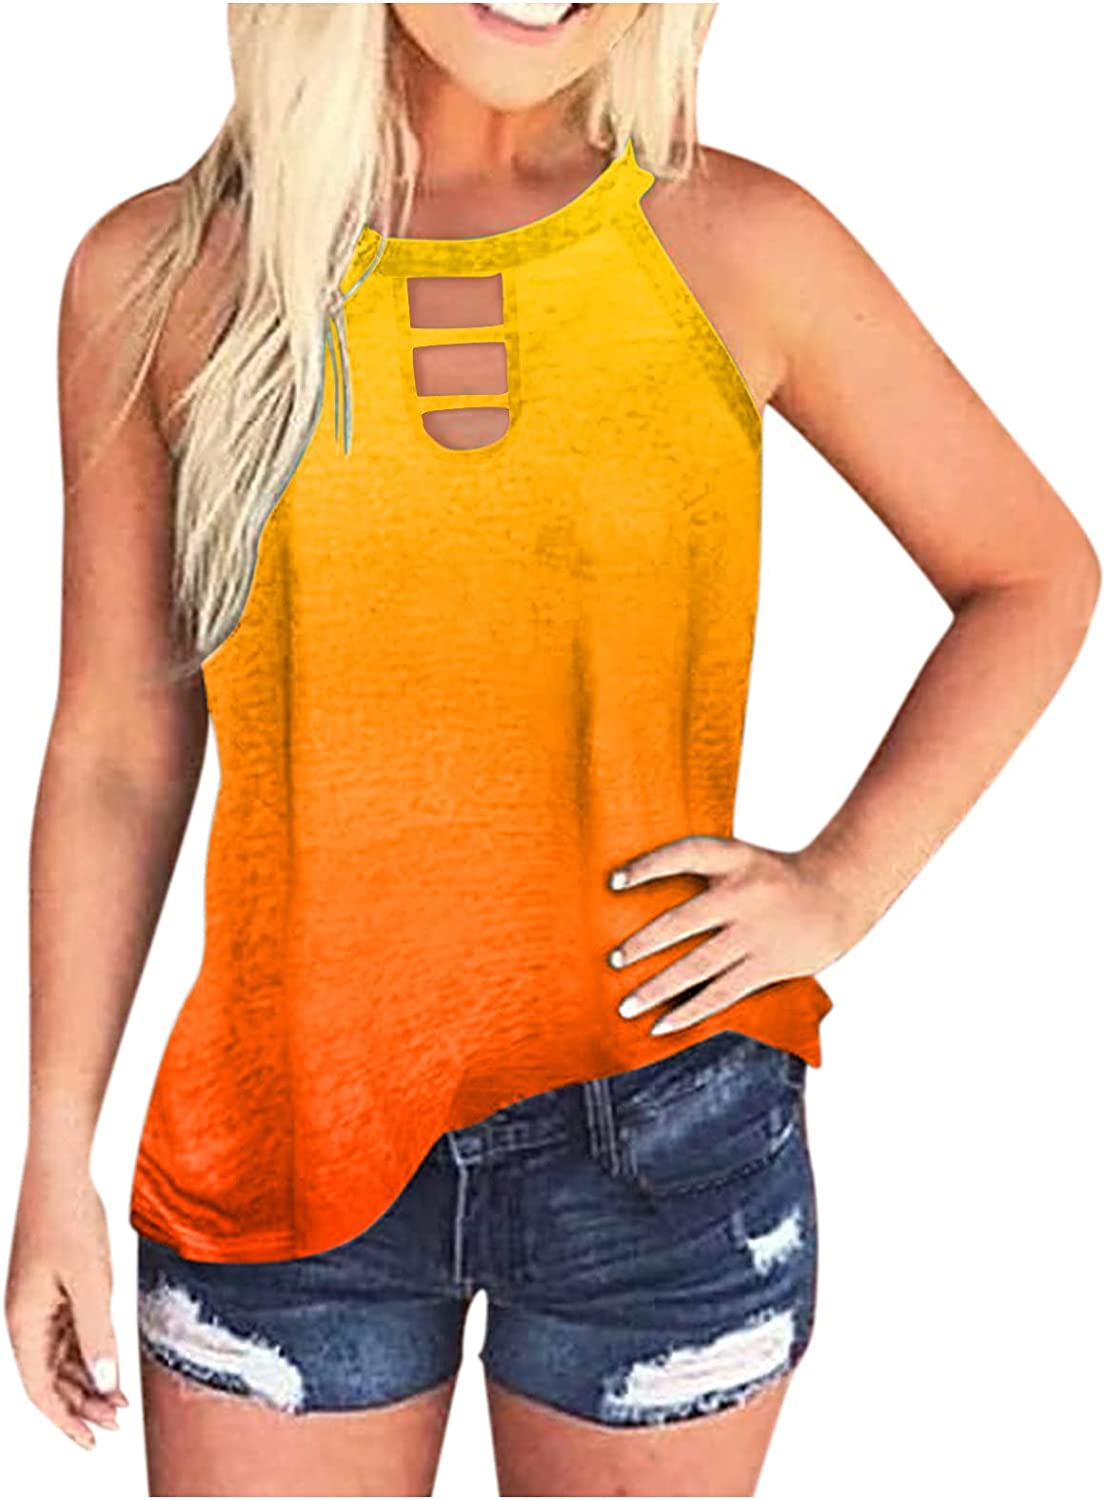 AODONG Tank Tops for Women Trendy, Womens Tie-Dye Shirts Summer Sleeveless Daily Tees Loose Blouses Pullover T-Shirts